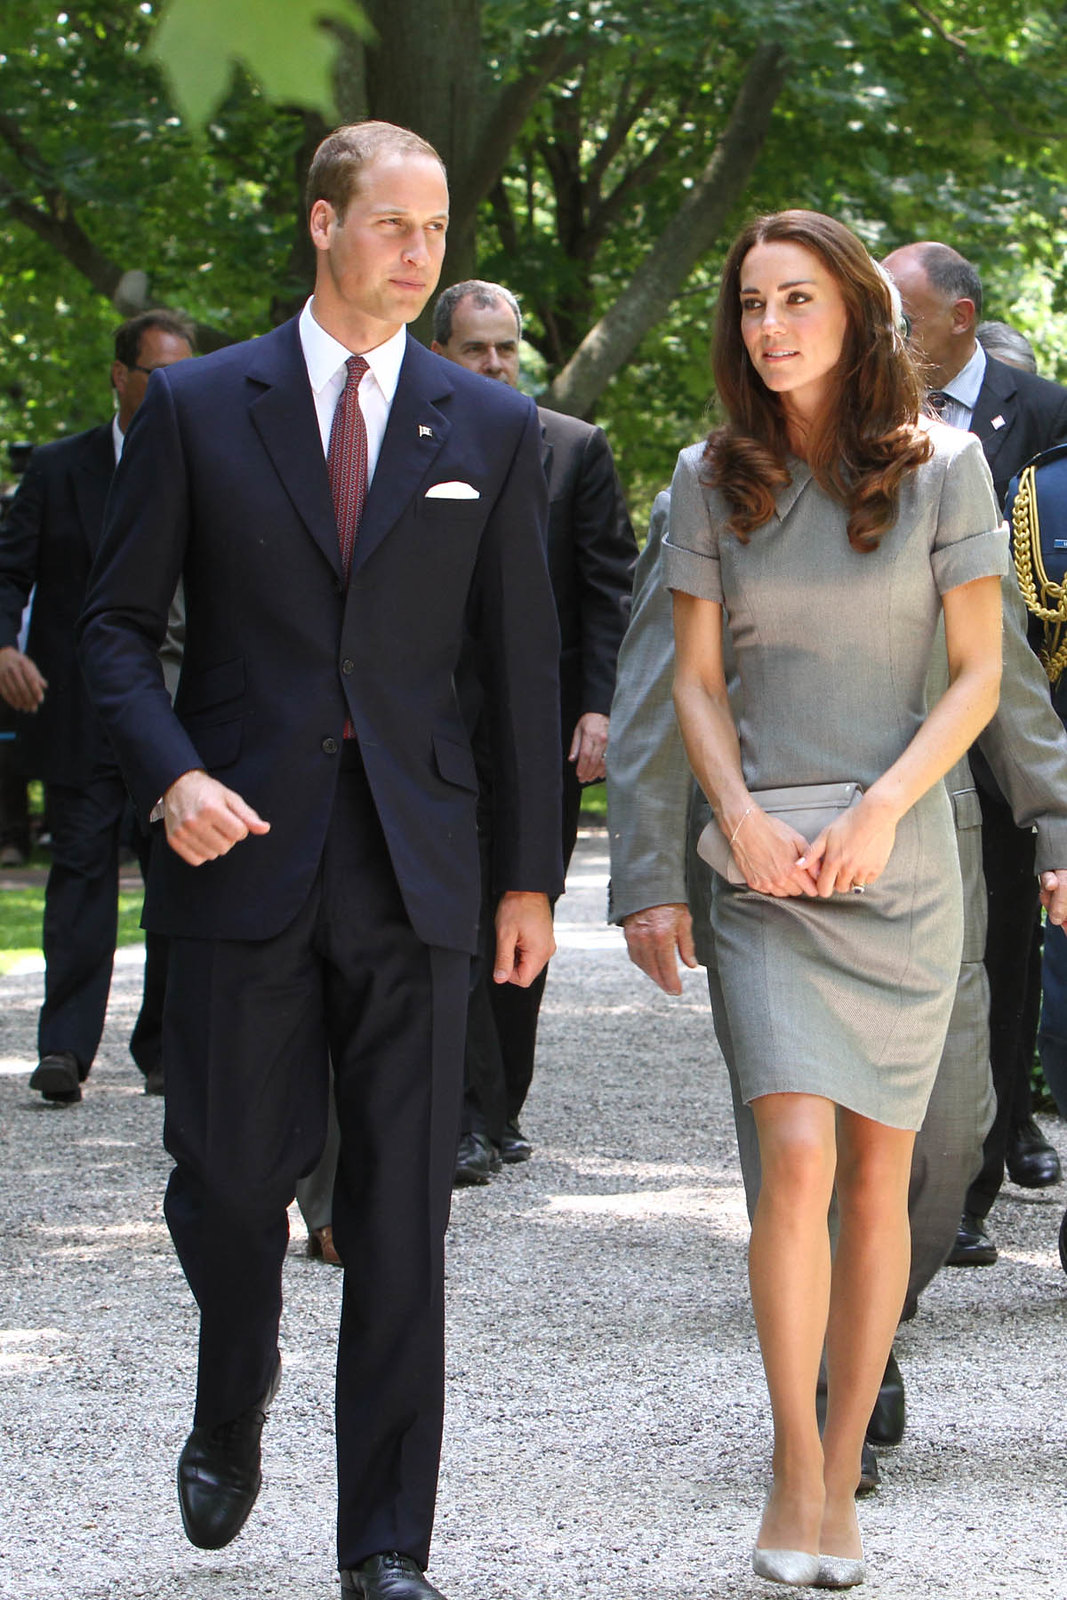 The Duchess of Cambridge wore grey Catherine Walker Kensington Dress with grey pumps for Tree platning ceremony in canada